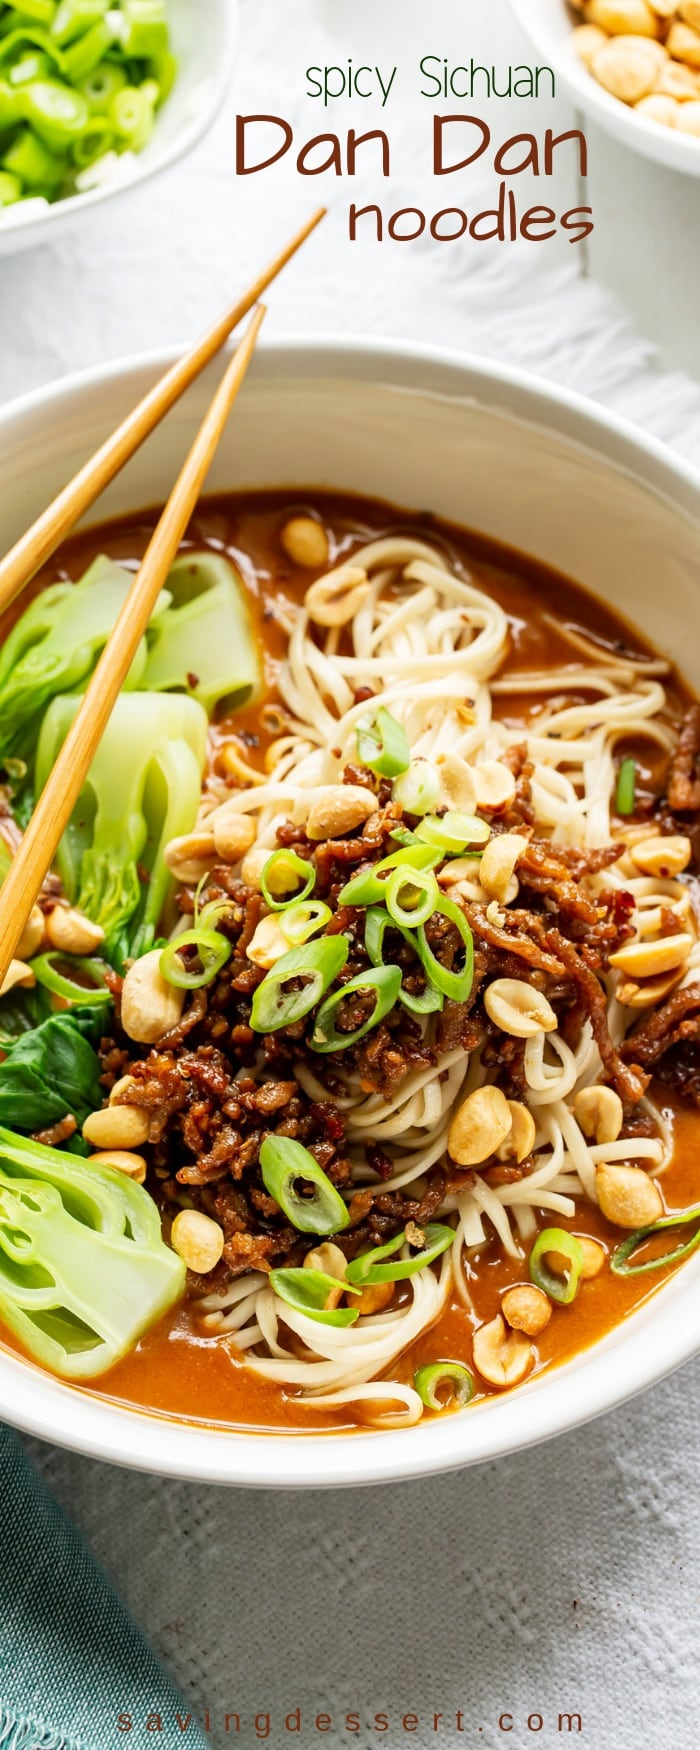 Spicy Dan Dan Noodles Recipe with a rich peanut sauce, blanched fresh vegetables, crispy minced pork, and plenty of slurp-able noodles garnished with scallions and peanuts. #savingroomfordessert #spicyasian #dandannoodles #asiannoodlerecipe #asiannoodles #peanutsauce #asian #sichuan